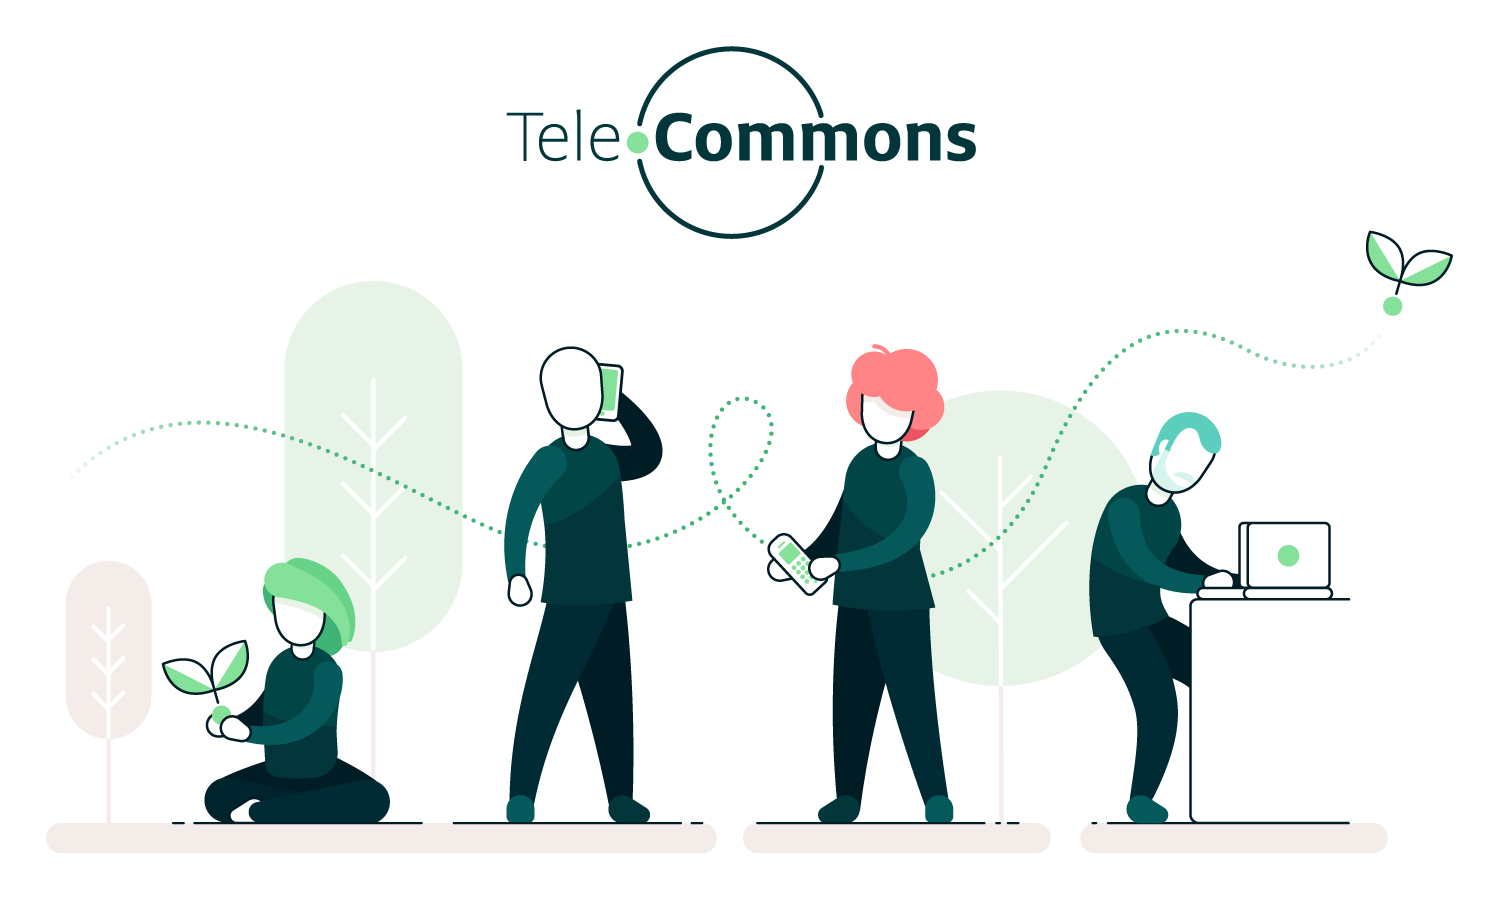 TeleCommons Front Image